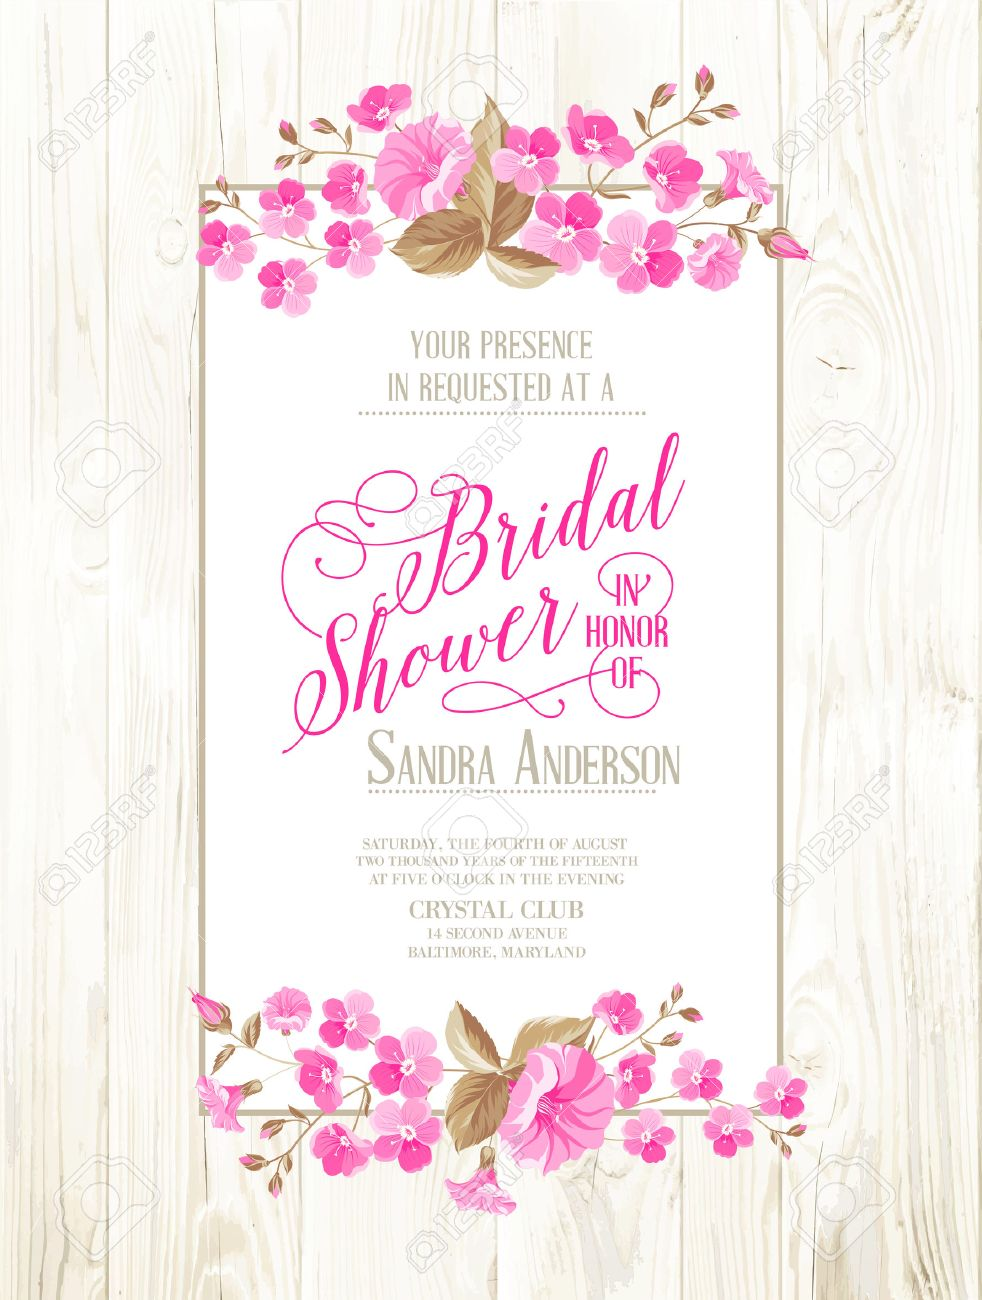 bridal shower invitation with ivory background on wooden pattern vintage floral invitation for spring or